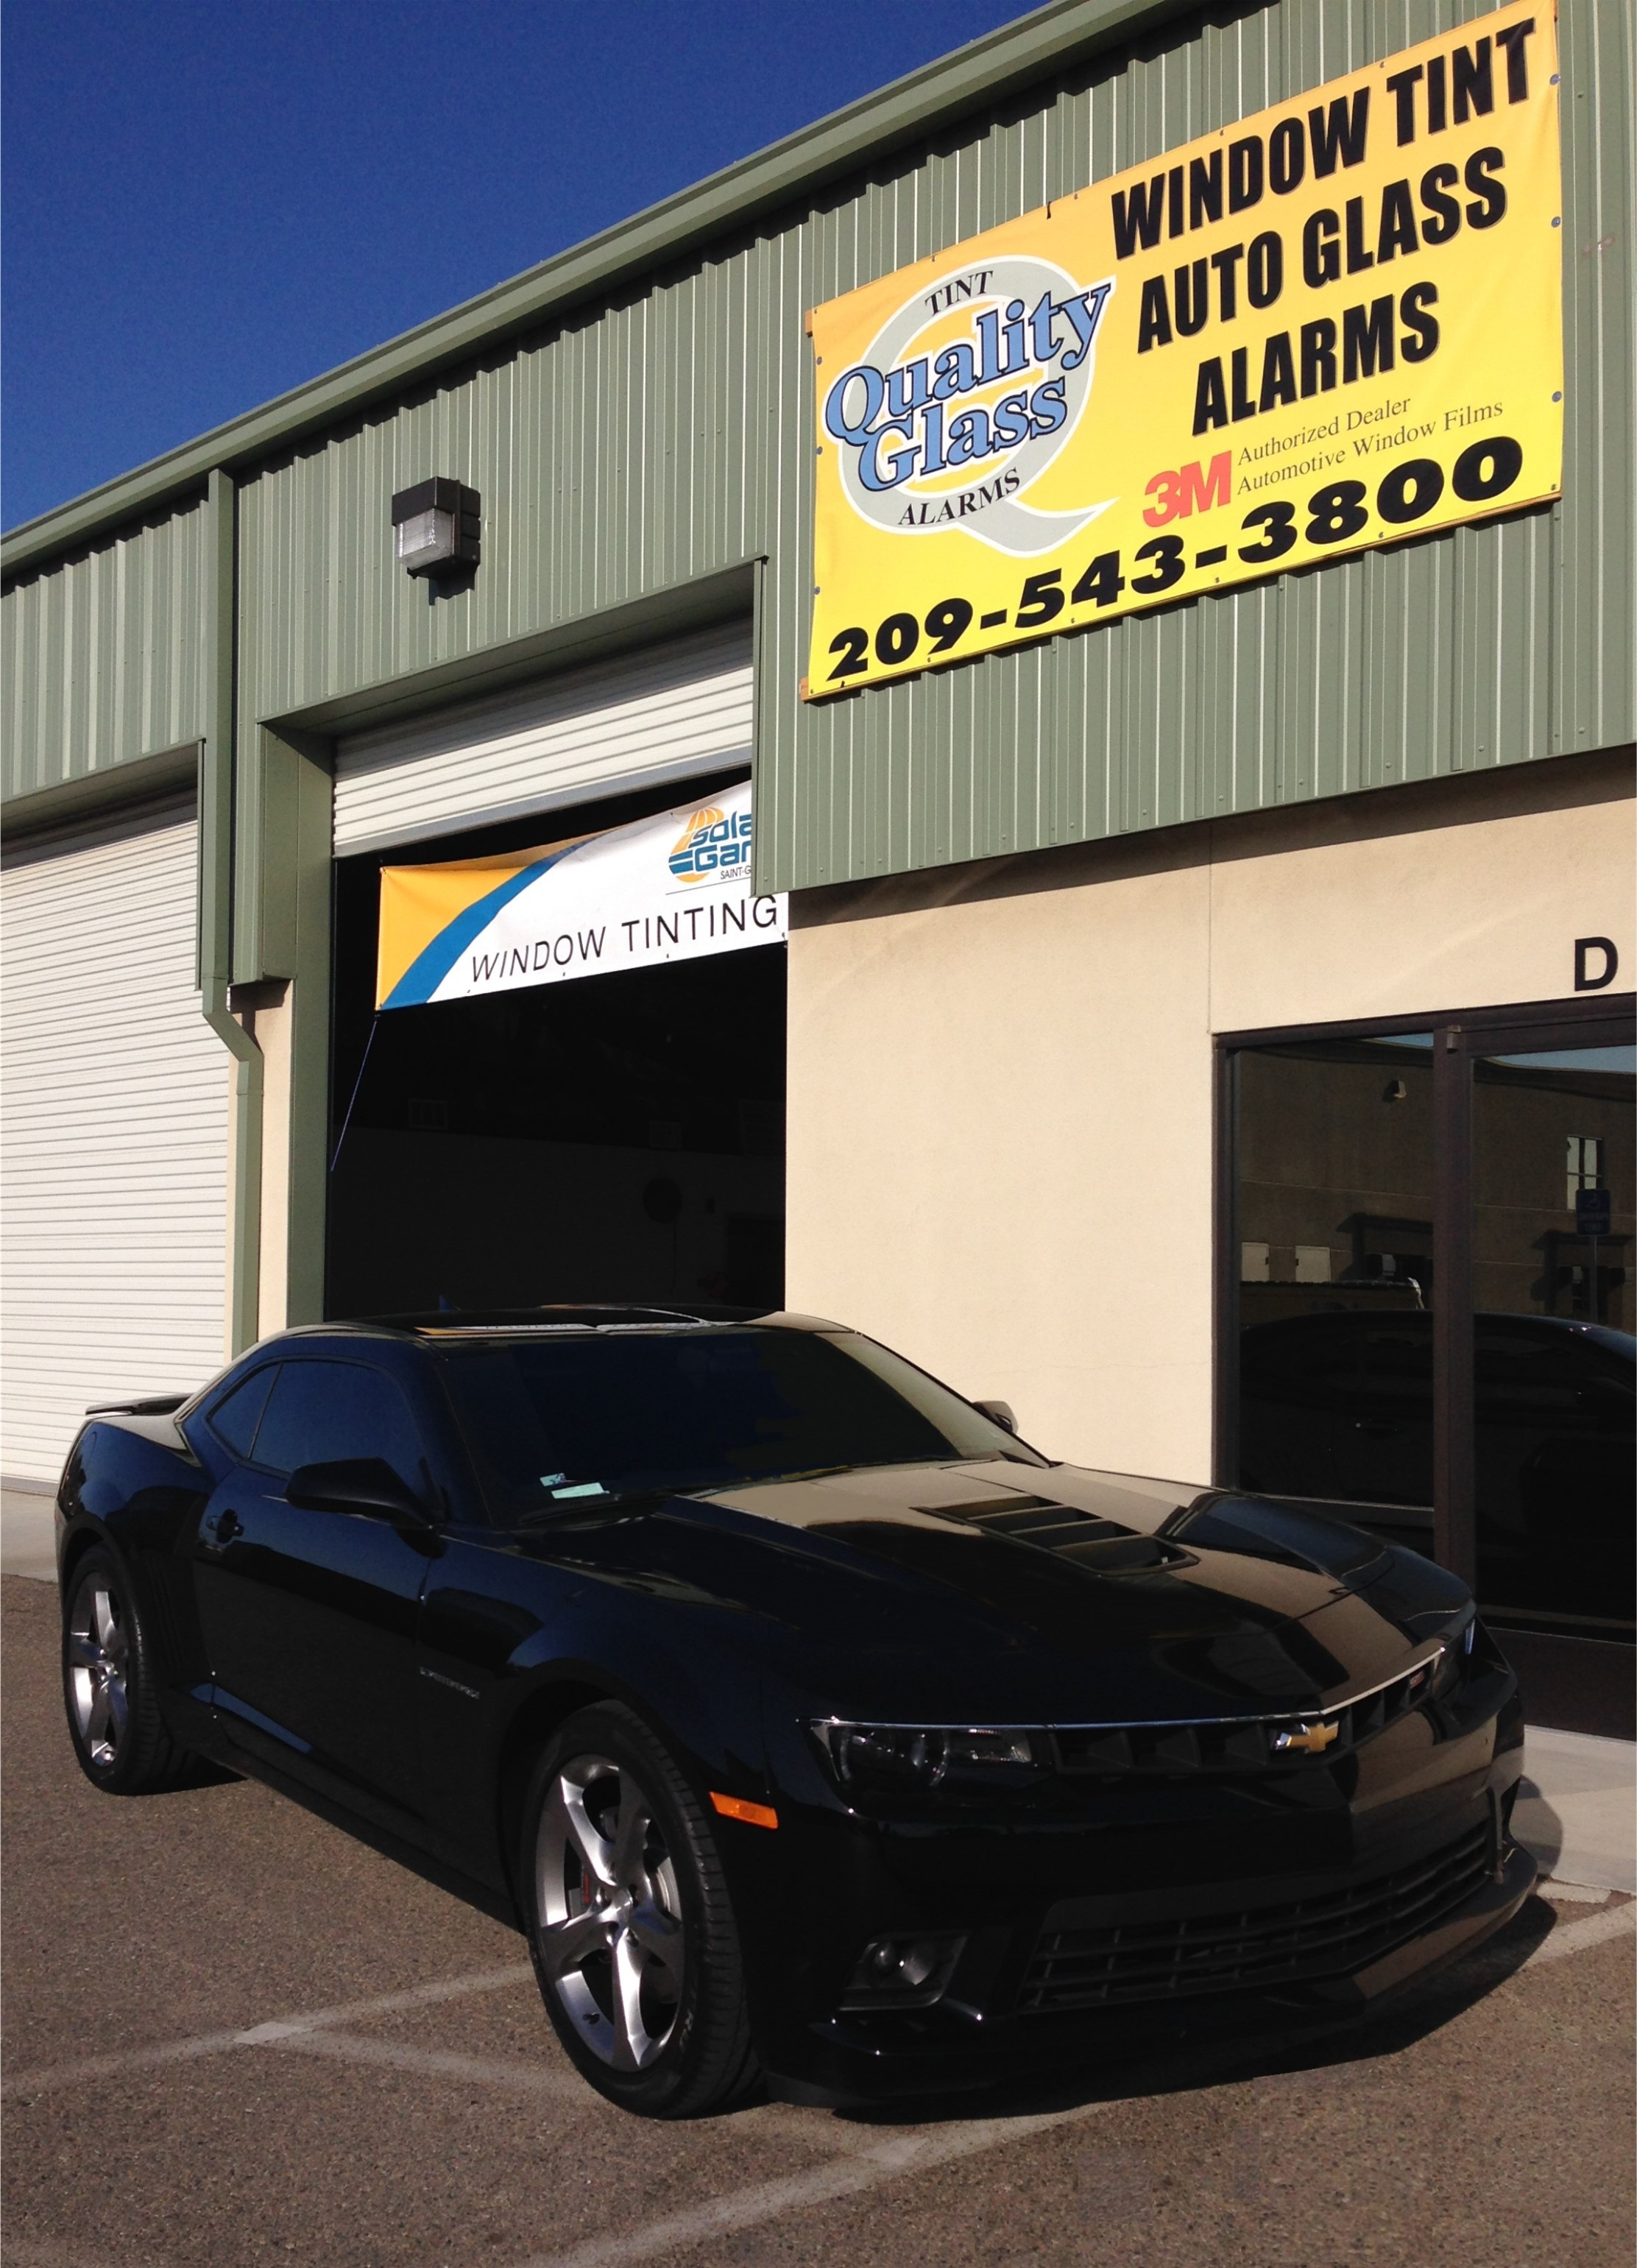 3M window film on black Chevy Charger car